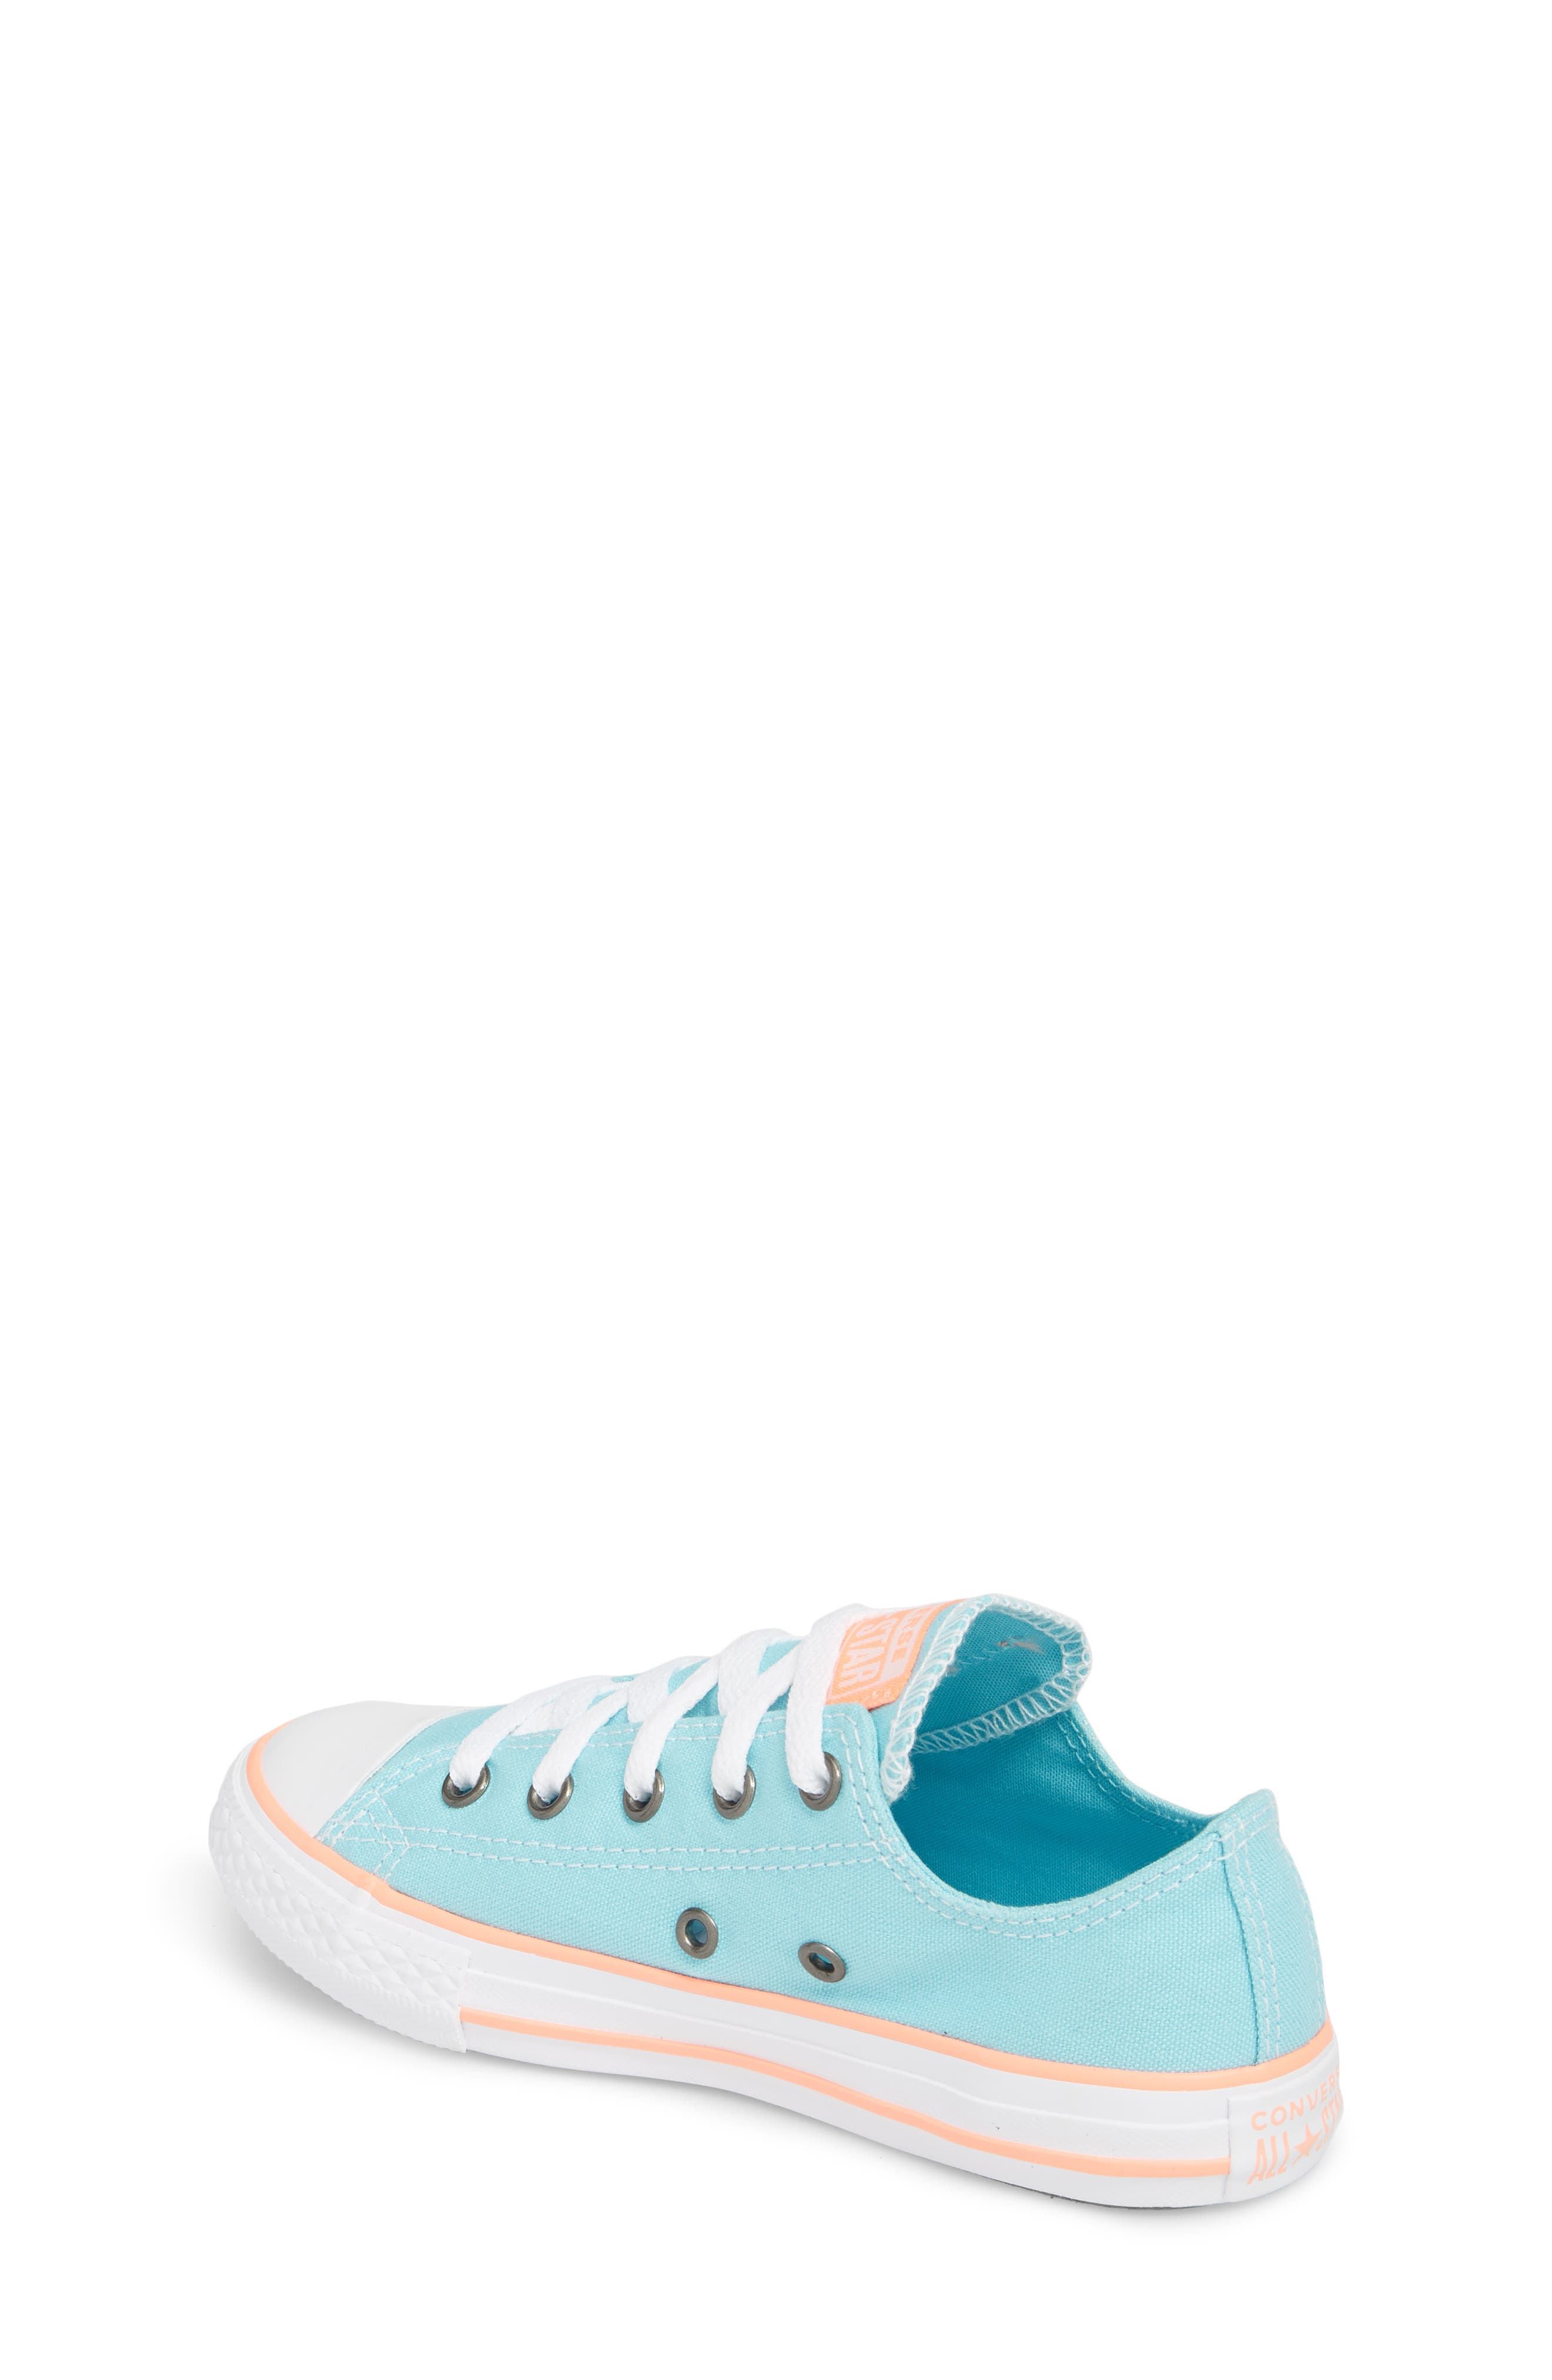 All Star<sup>®</sup> Low Top Sneaker,                             Alternate thumbnail 2, color,                             486